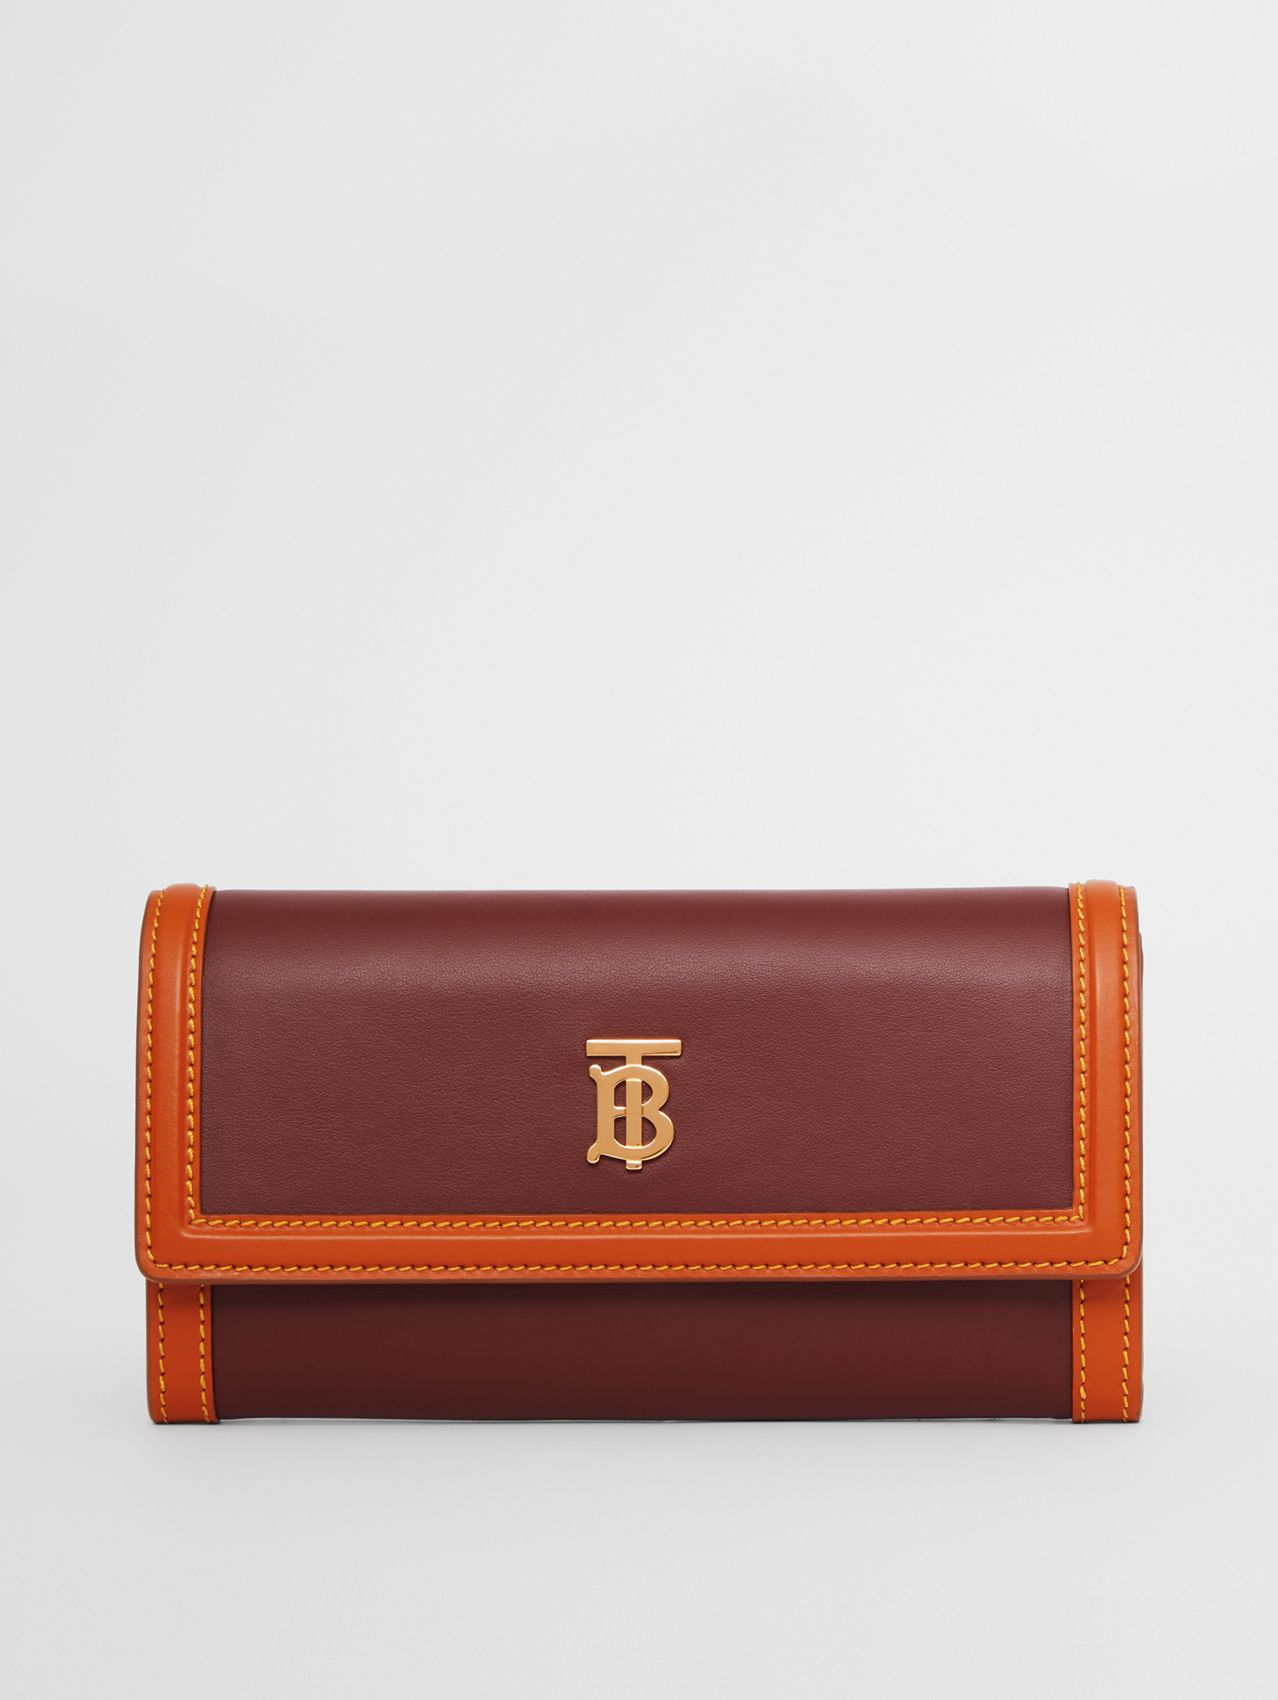 Monogram Motif Two-tone Leather Continental Wallet in Garnet